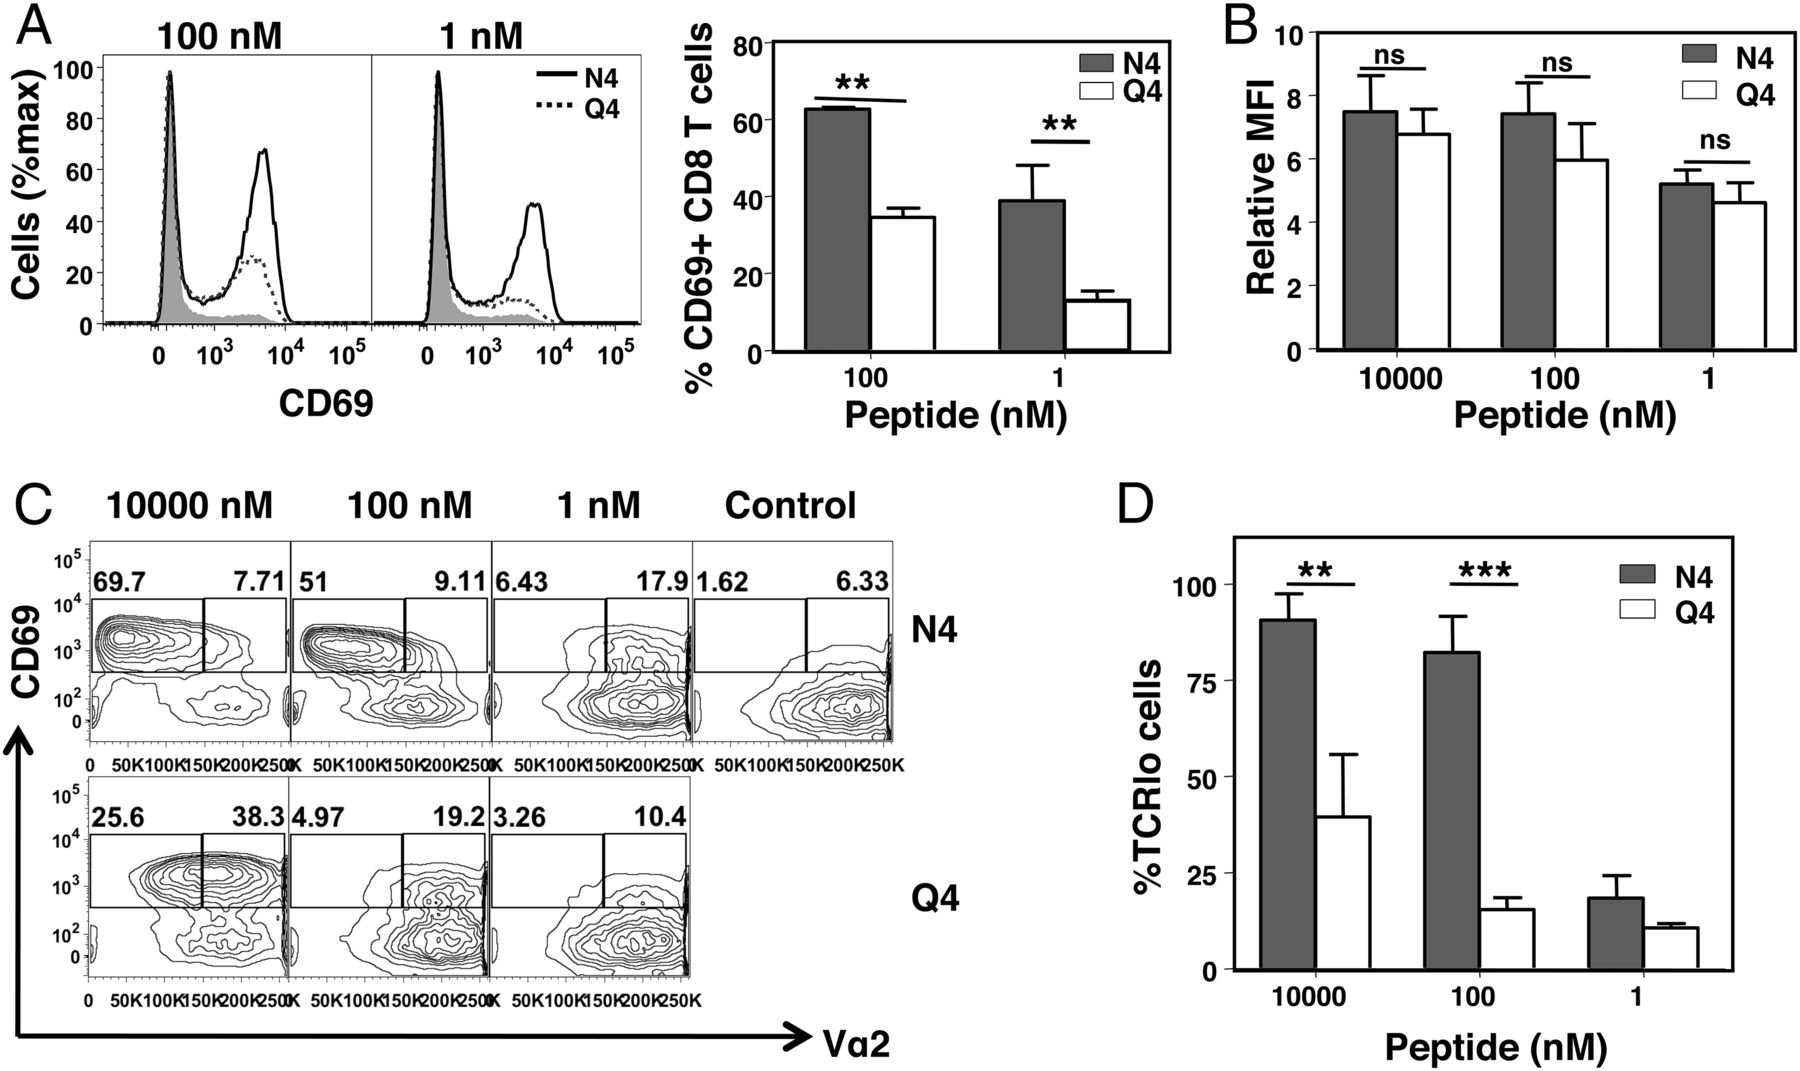 Modulation of Naive CD8 T Cell Response Features by Ligand